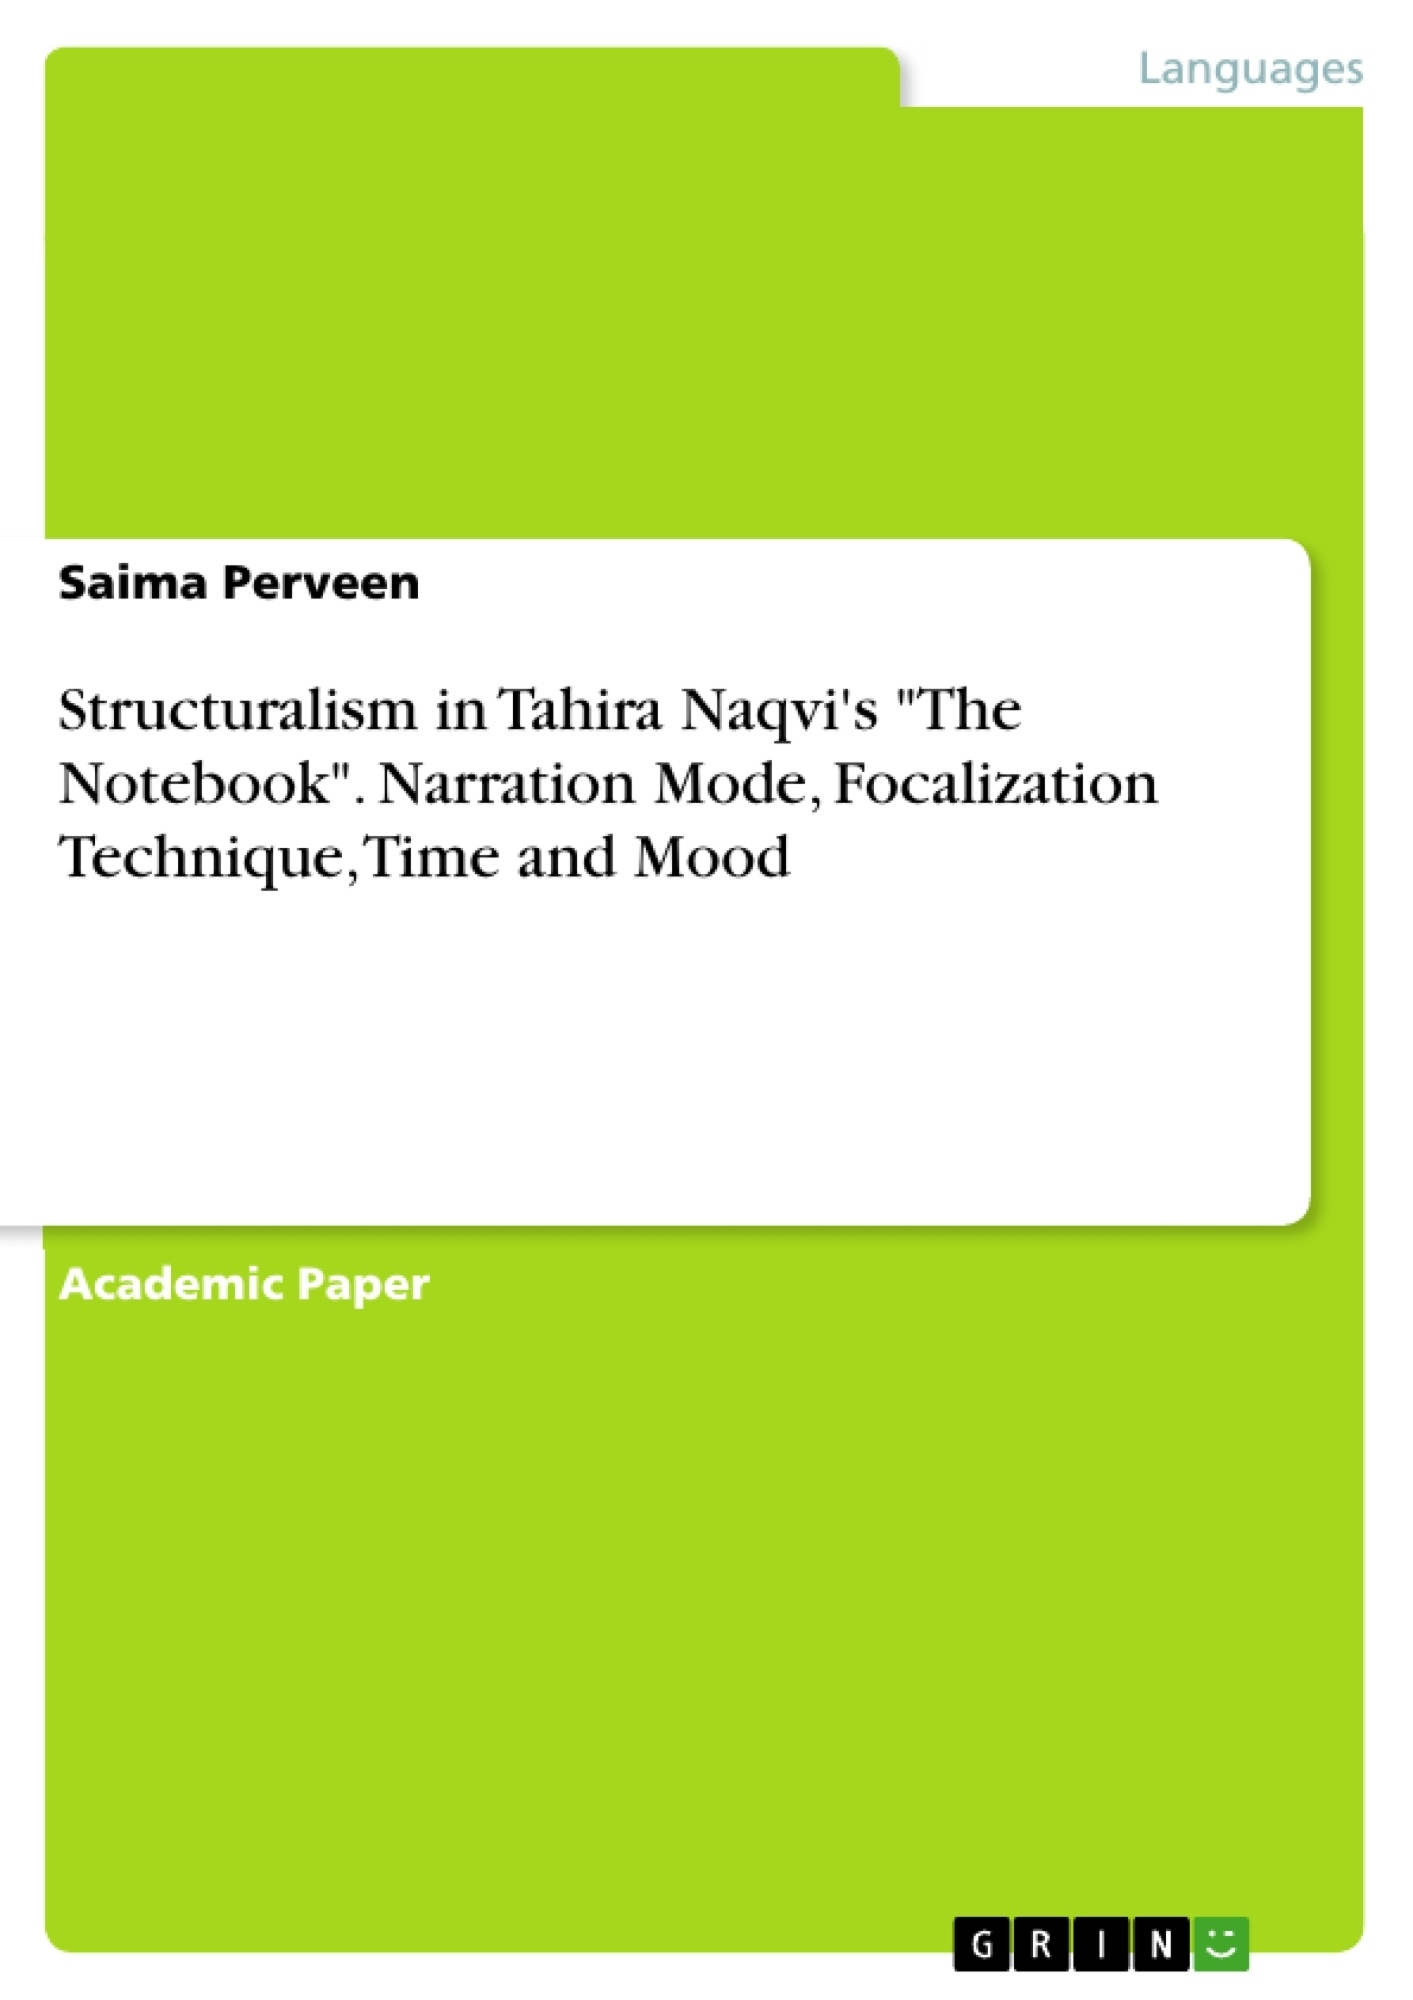 "Title: Structuralism in Tahira Naqvi's ""The Notebook"". Narration Mode, Focalization Technique, Time and Mood"